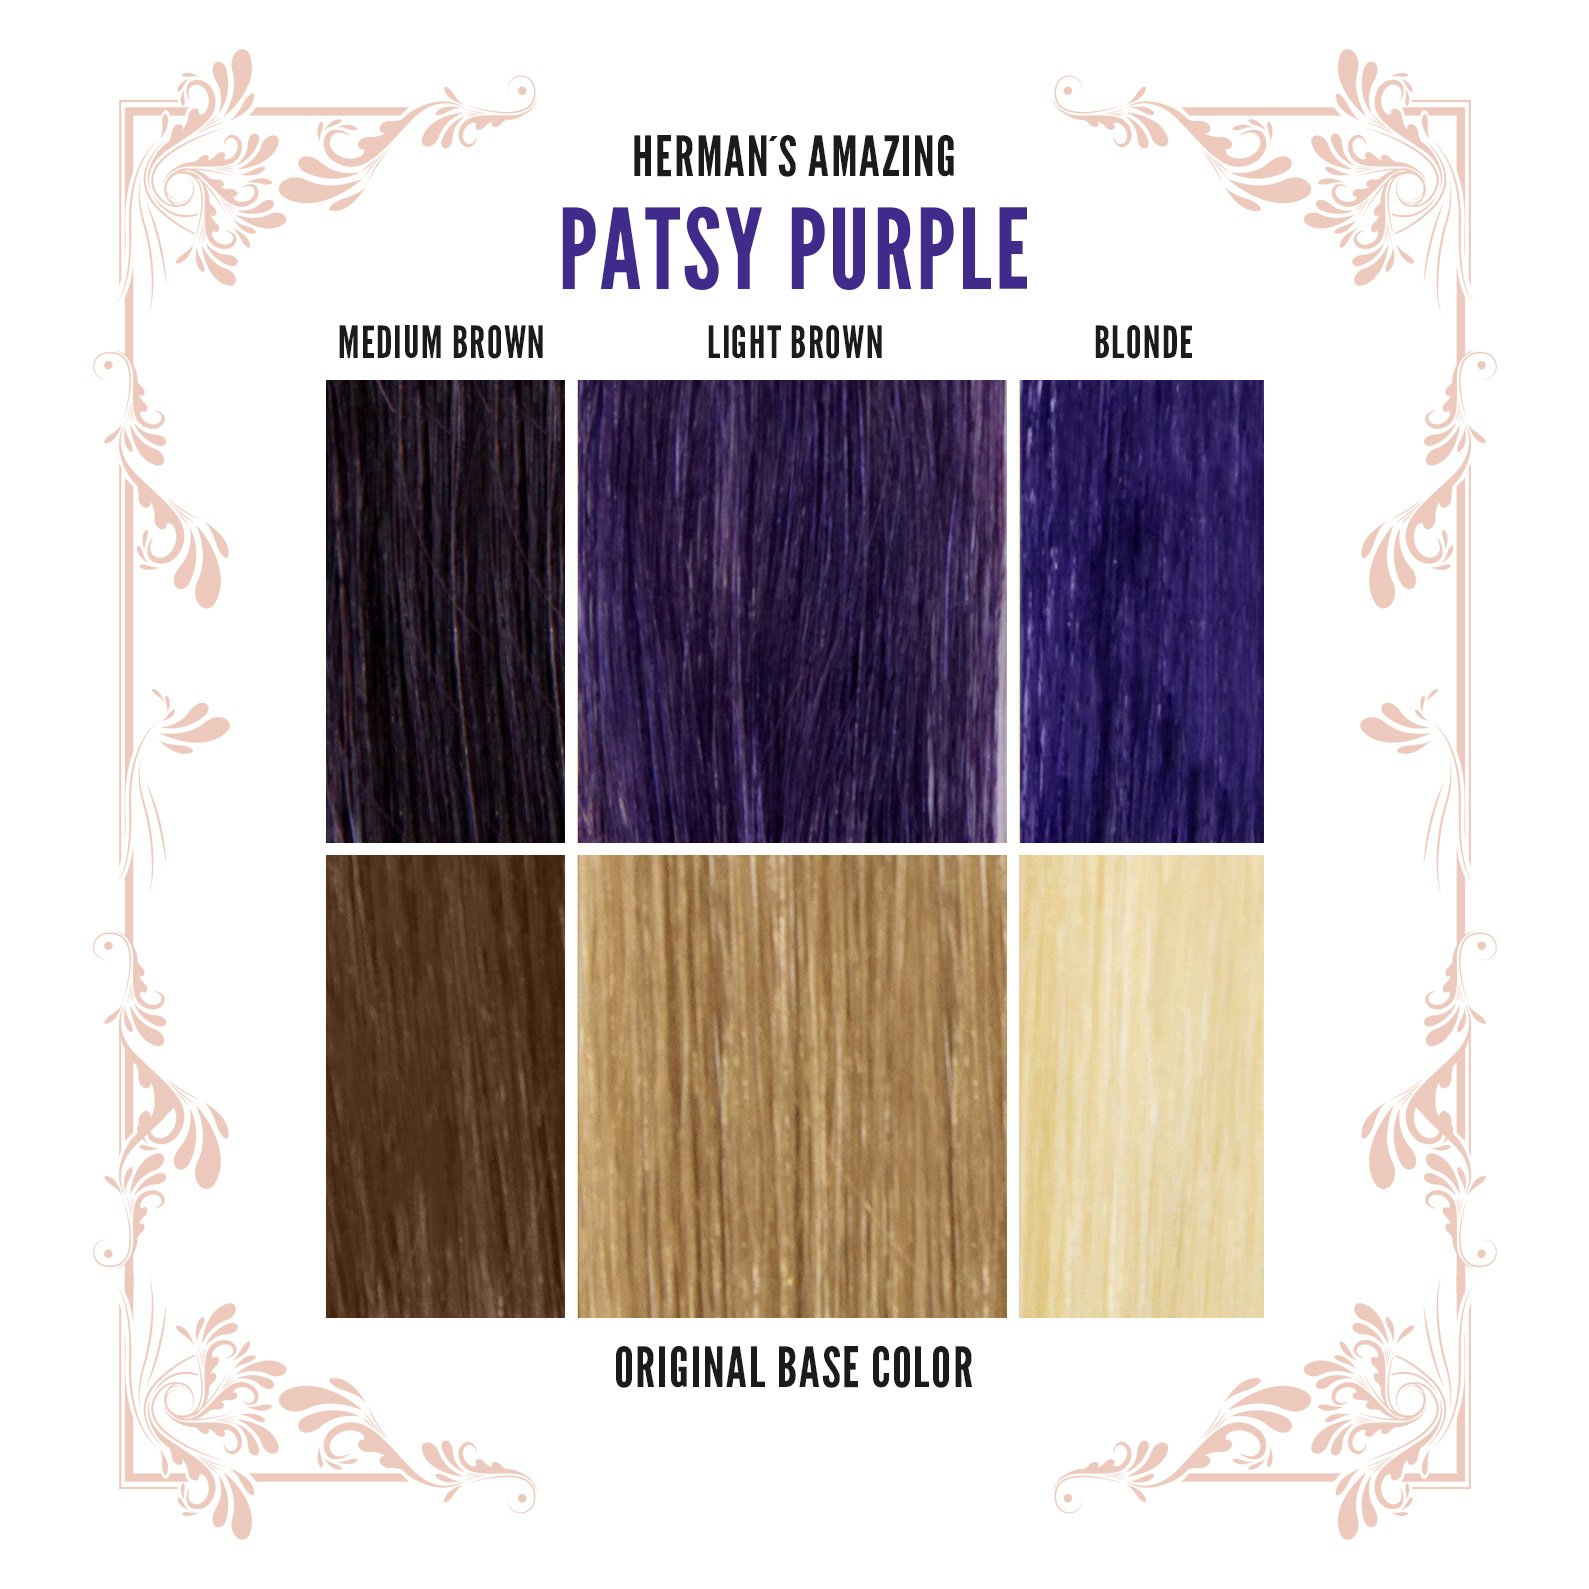 Herman's Amazing - Patsy Purple